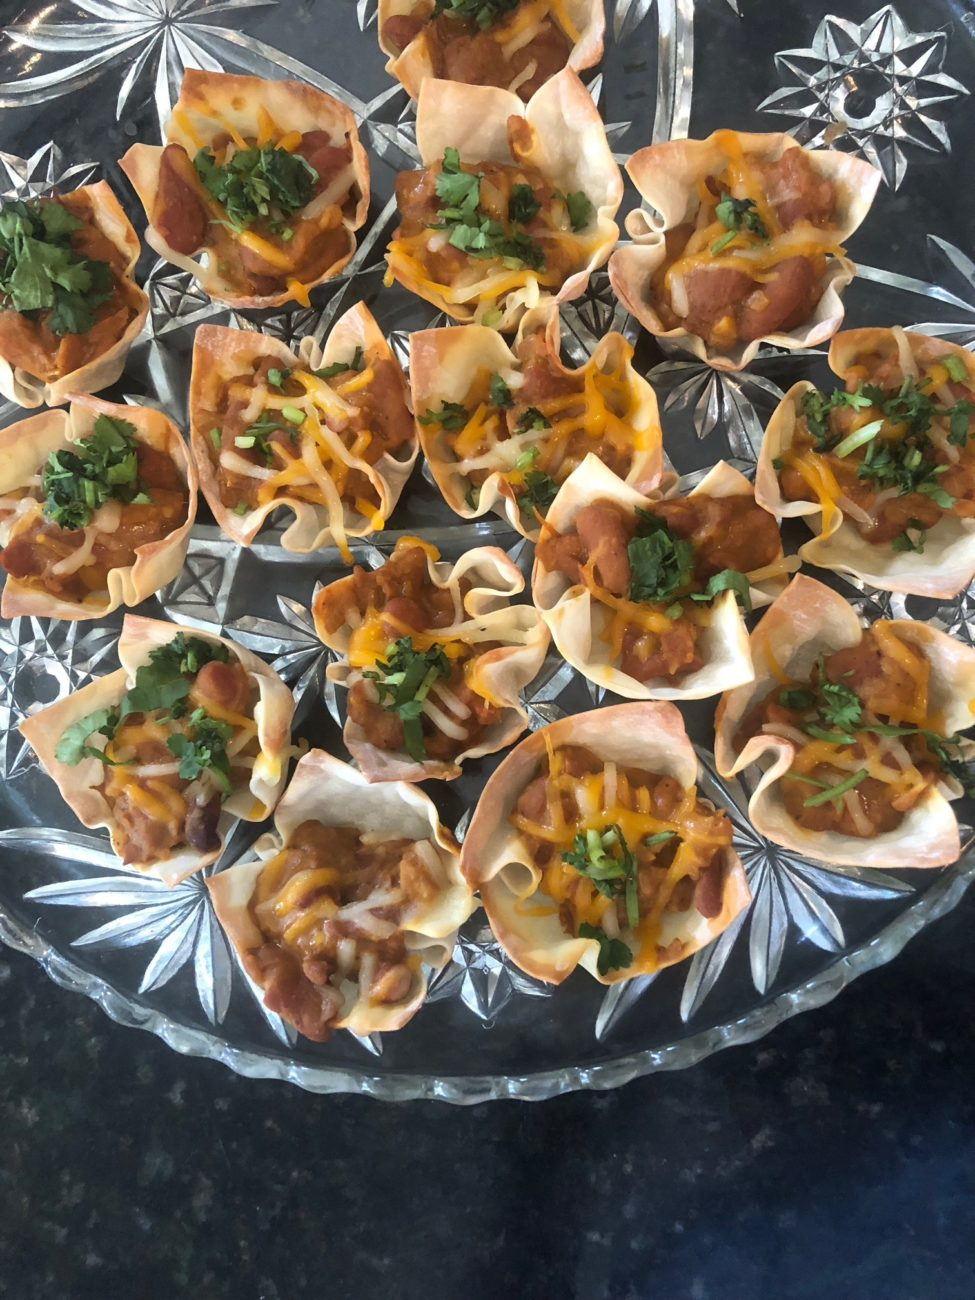 Taco cups with kidney beans (rajmah) with Geramin La Brie's Garam Masala